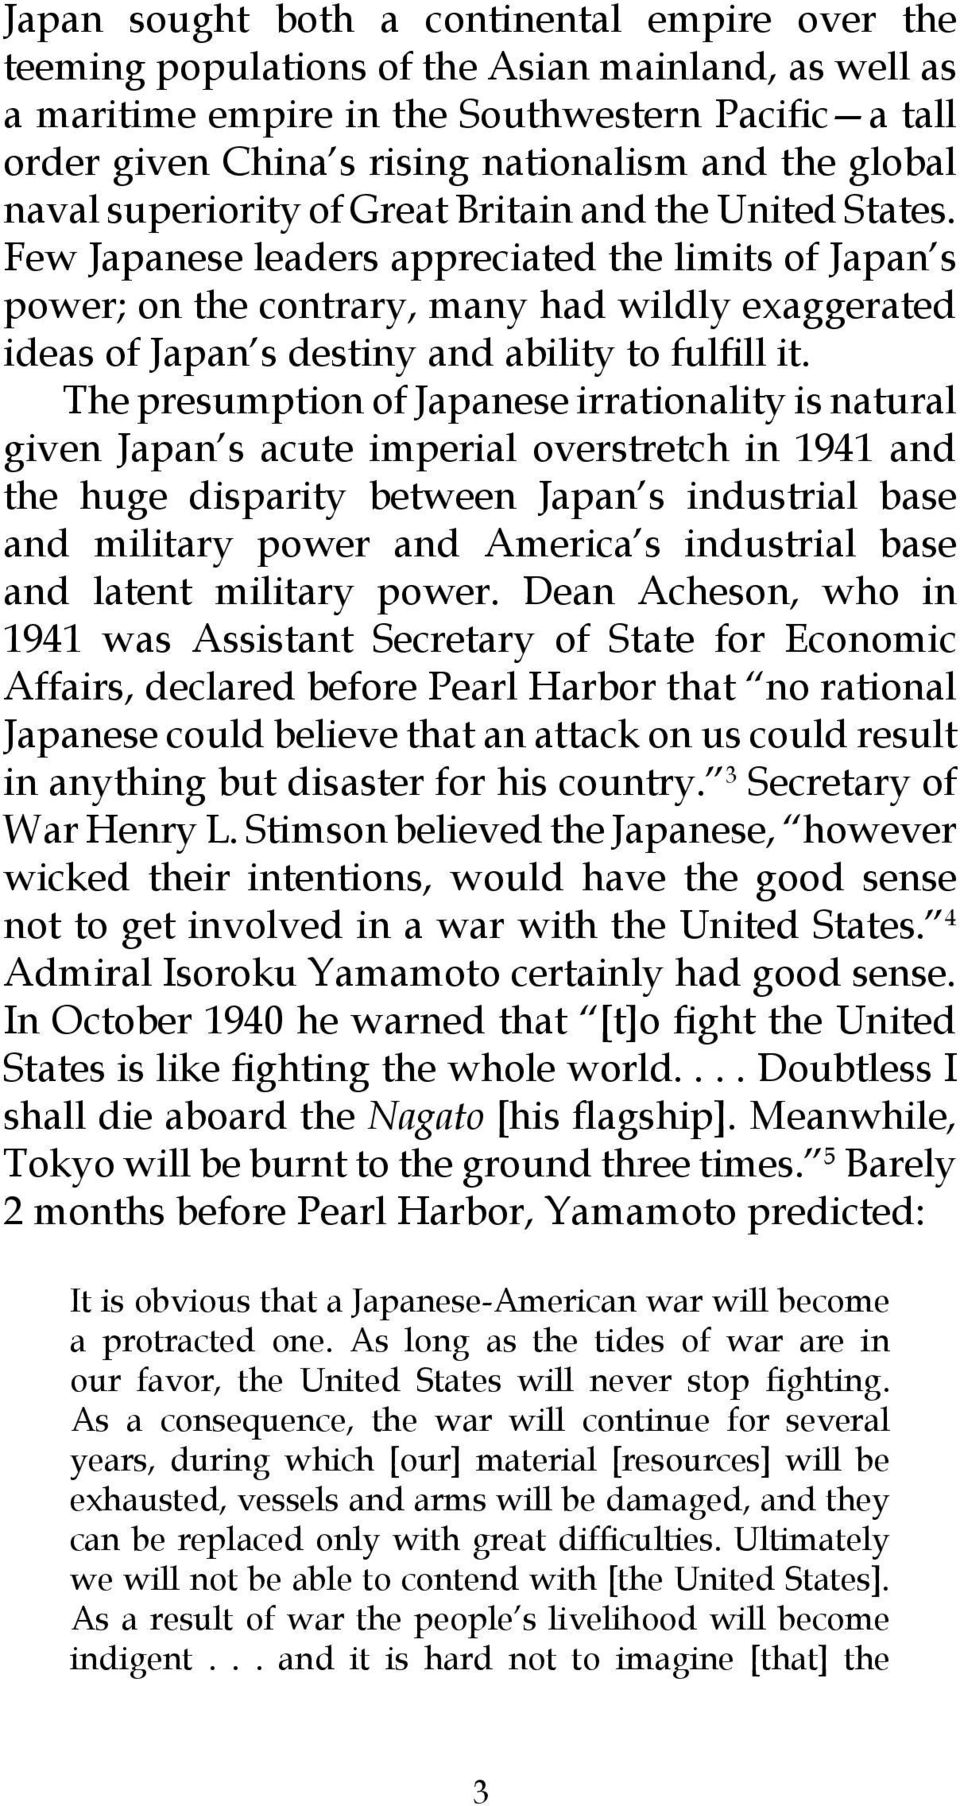 Few Japanese leaders appreciated the limits of Japan s power; on the contrary, many had wildly exaggerated ideas of Japan s destiny and ability to fulfill it.